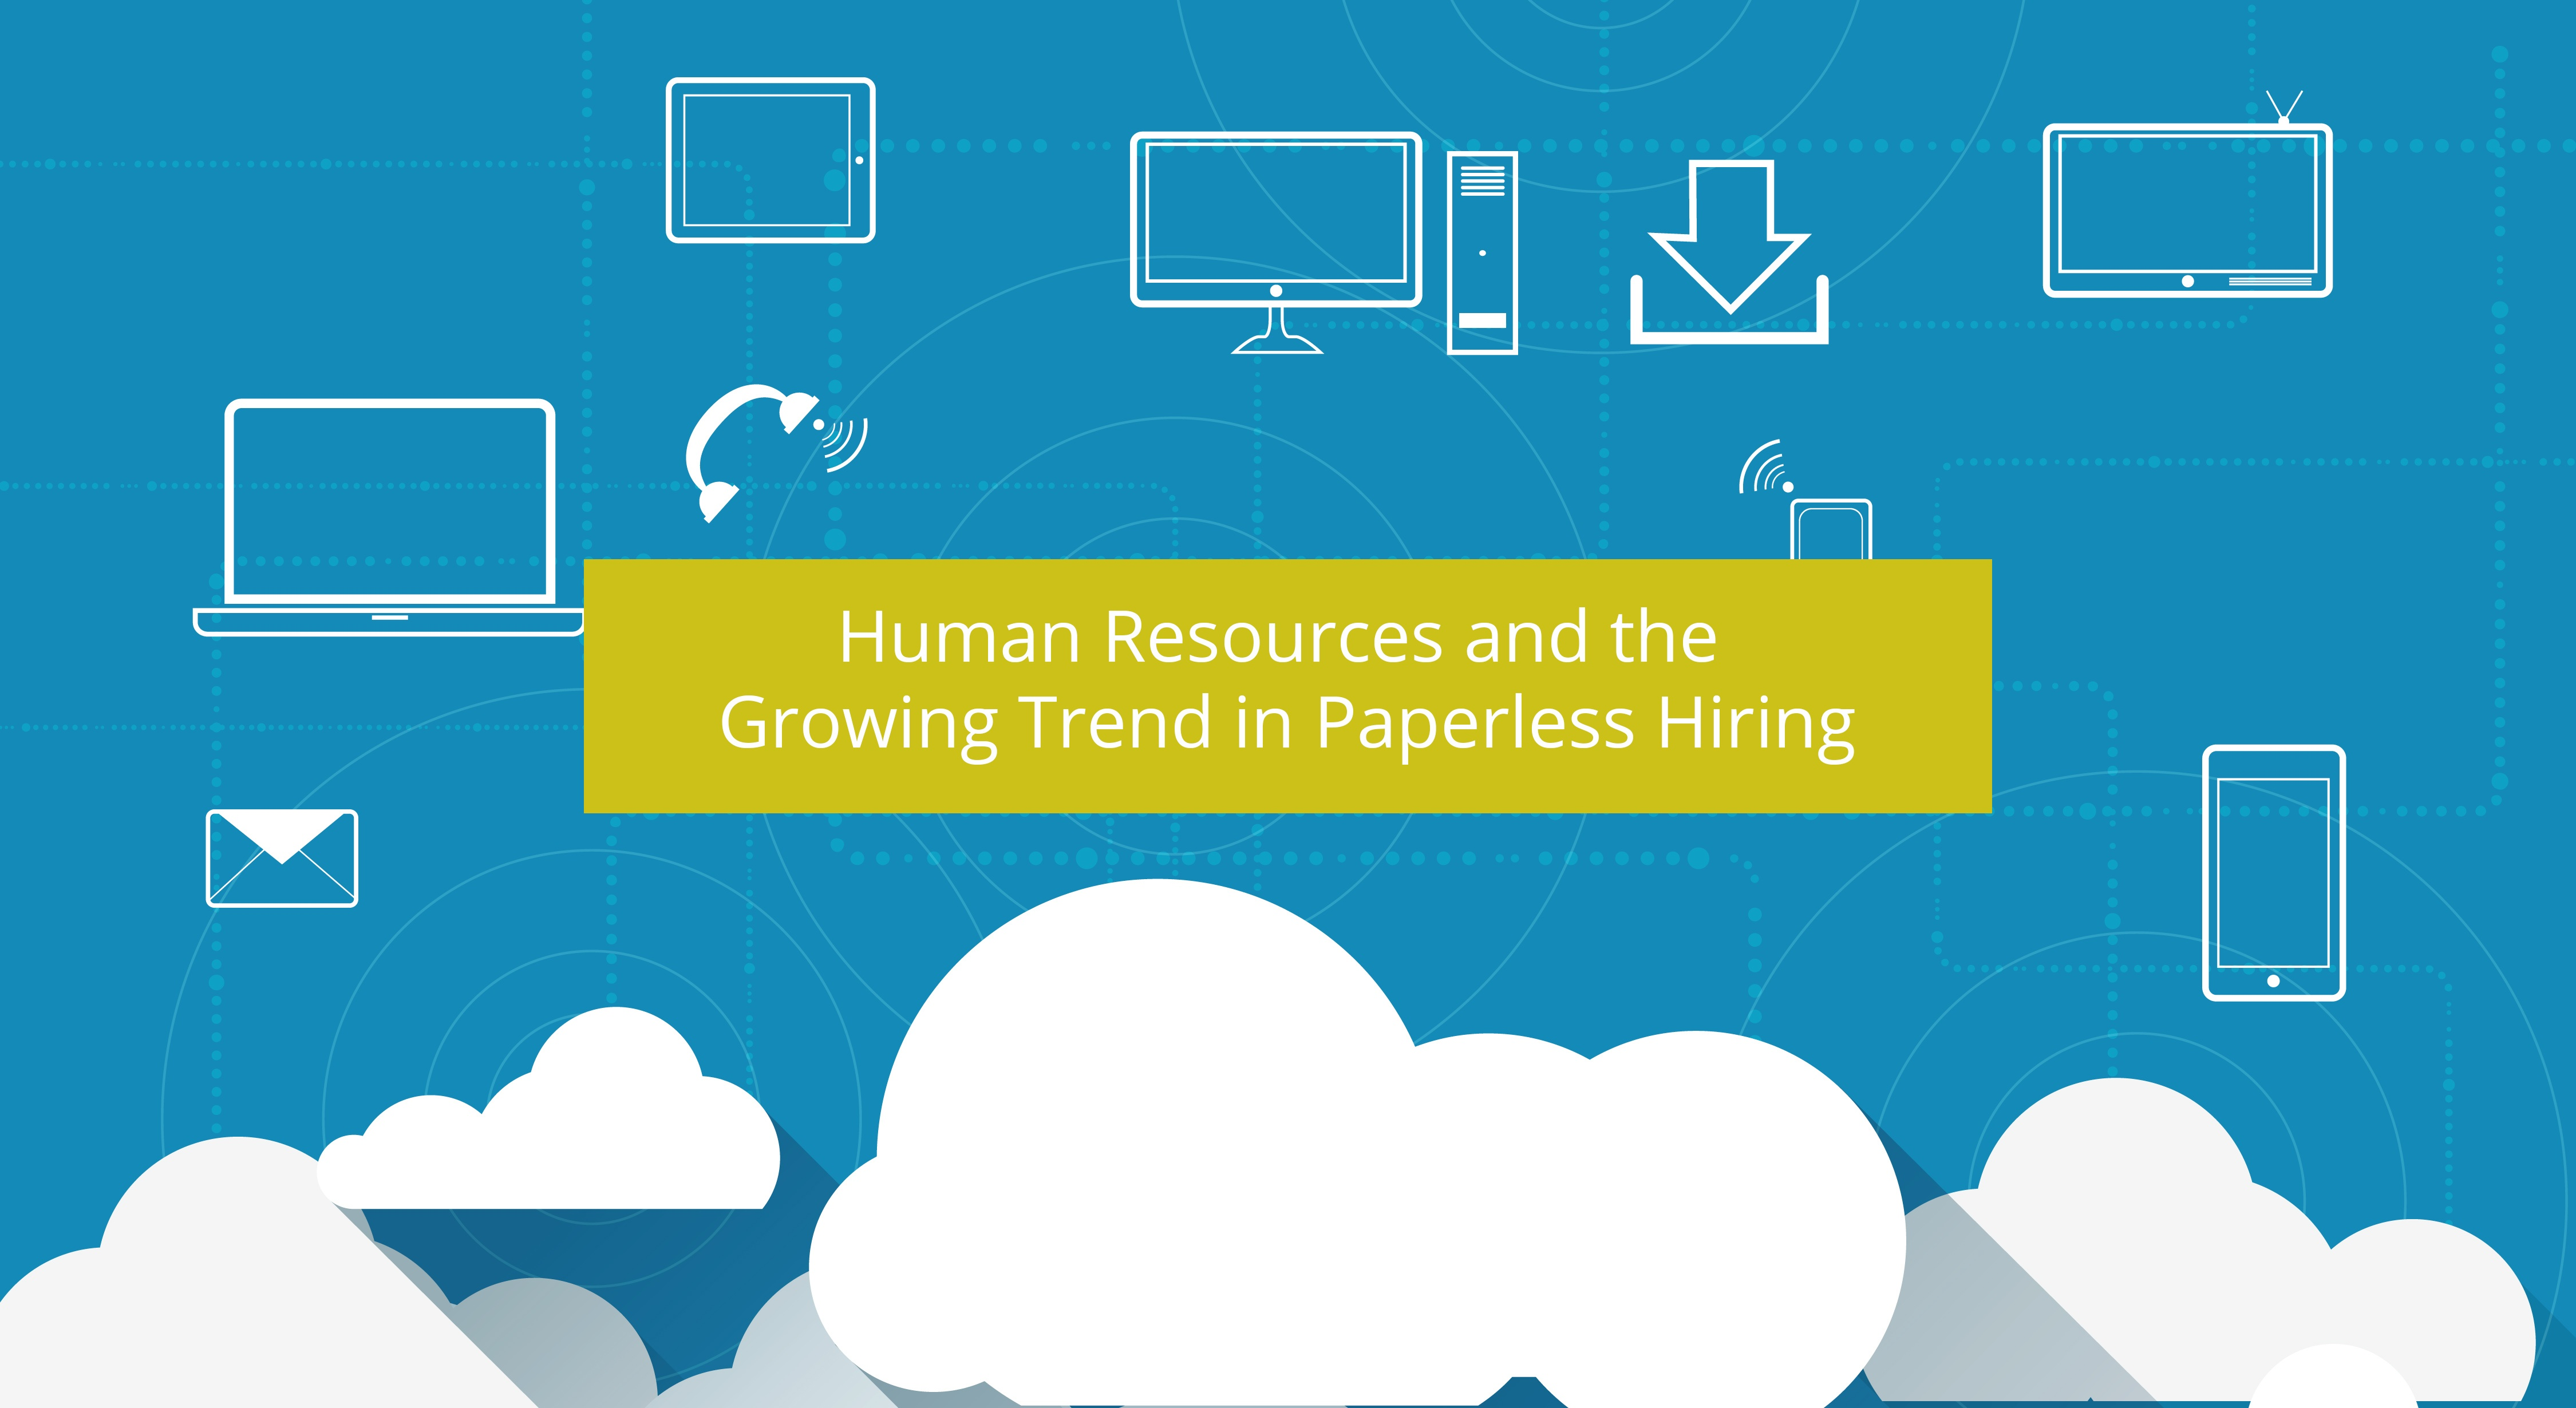 Human_Resources_and_the_Growing_Trend_in_Paperless_Hiring.jpg